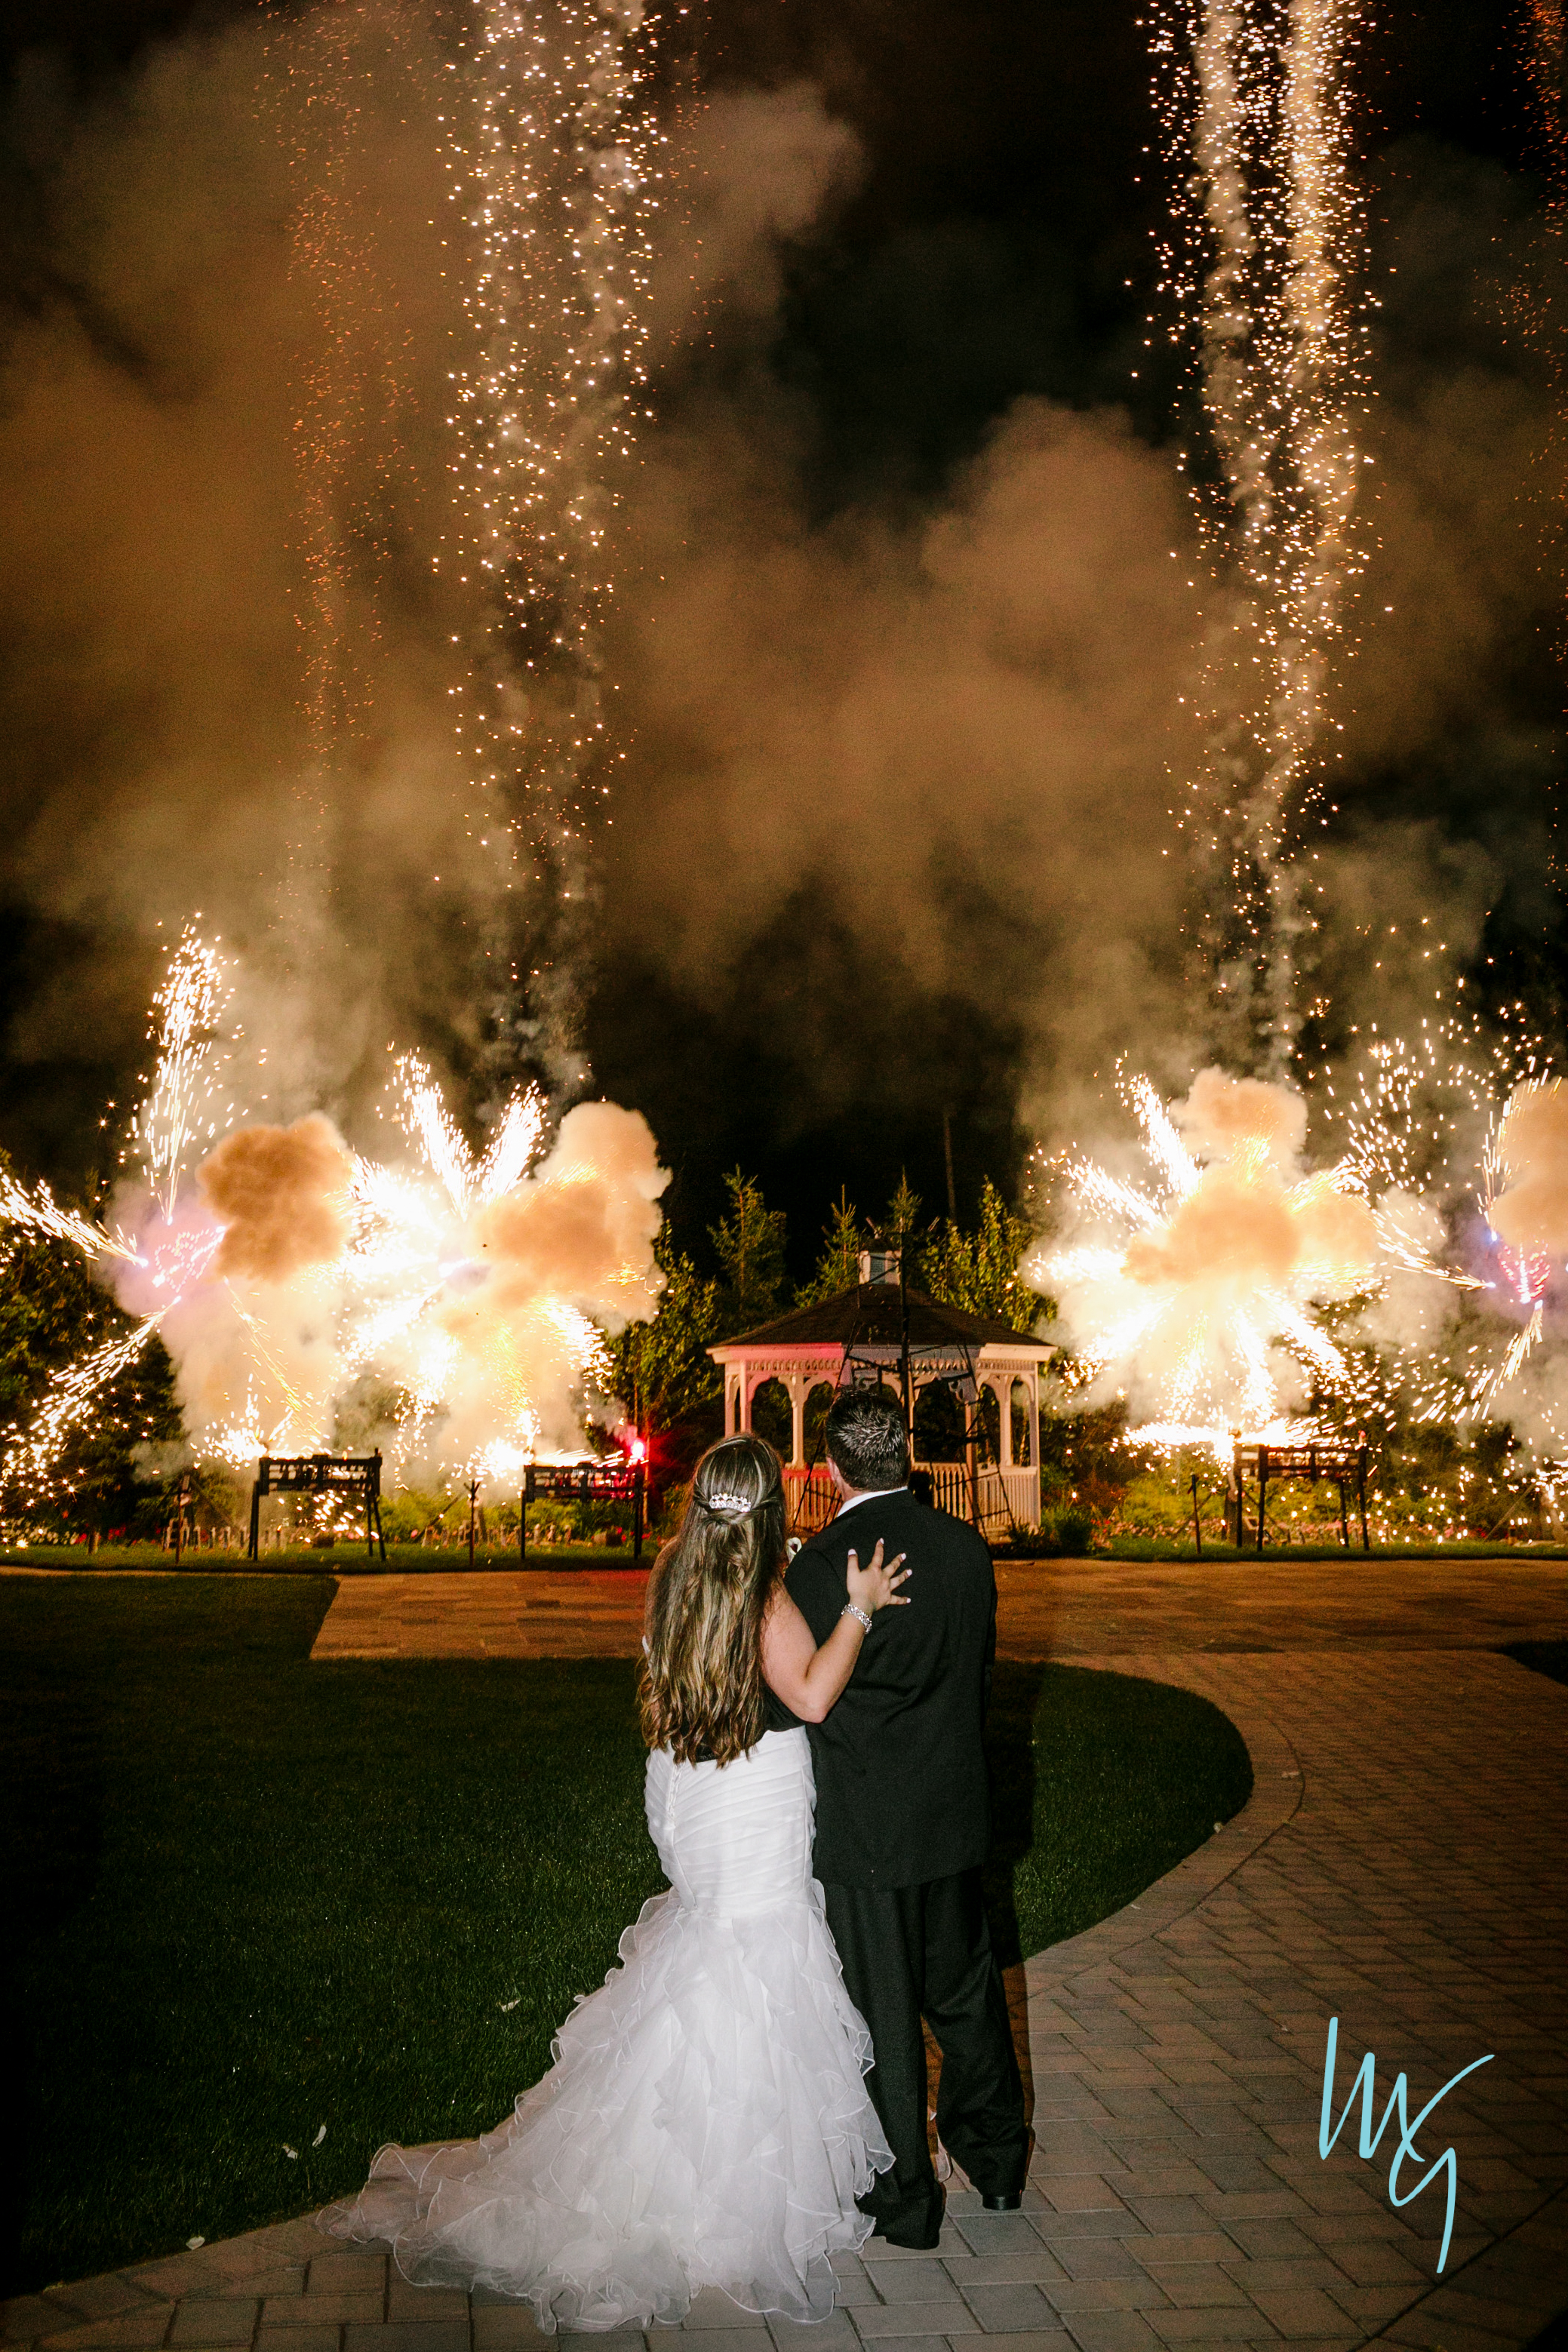 Wedding at The Chandelier in Flanders Valley in Flanders, NJ -    CLICK PHOTO to watch video of a Proximate display.